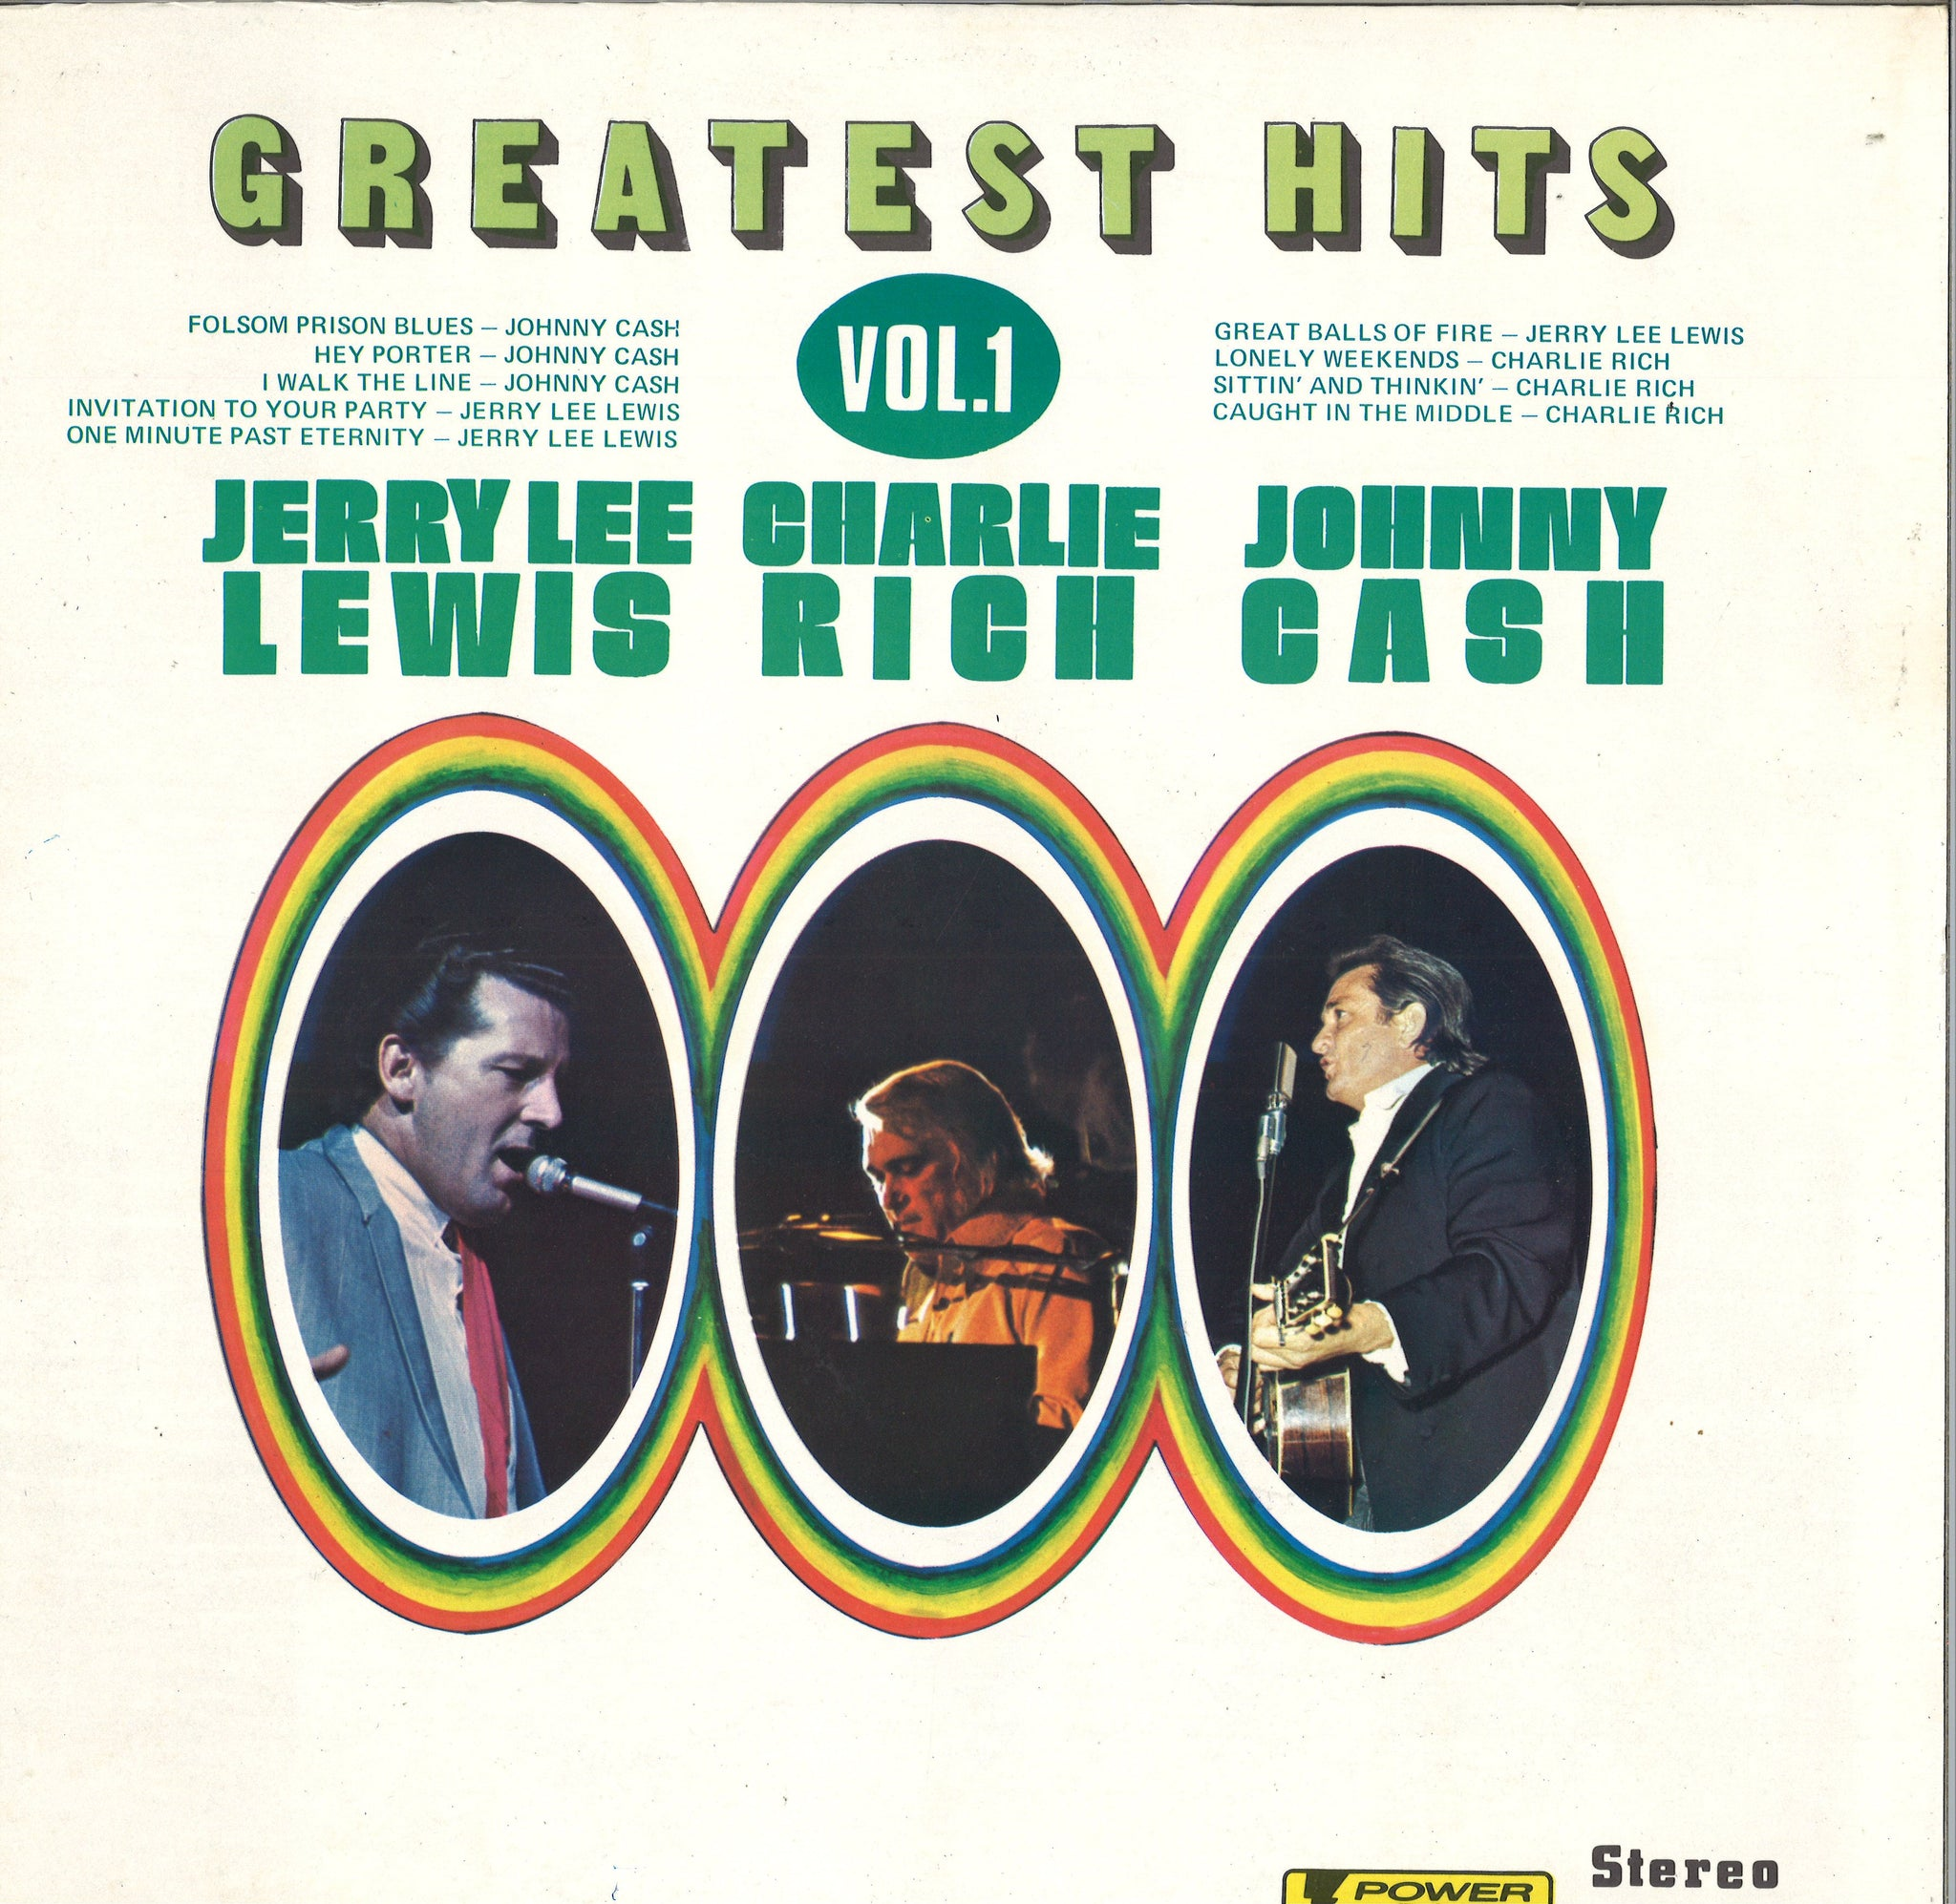 Jerry Lee Lewis, Charlie Rich, And Johnny Cash Greatest Hits Vol.1